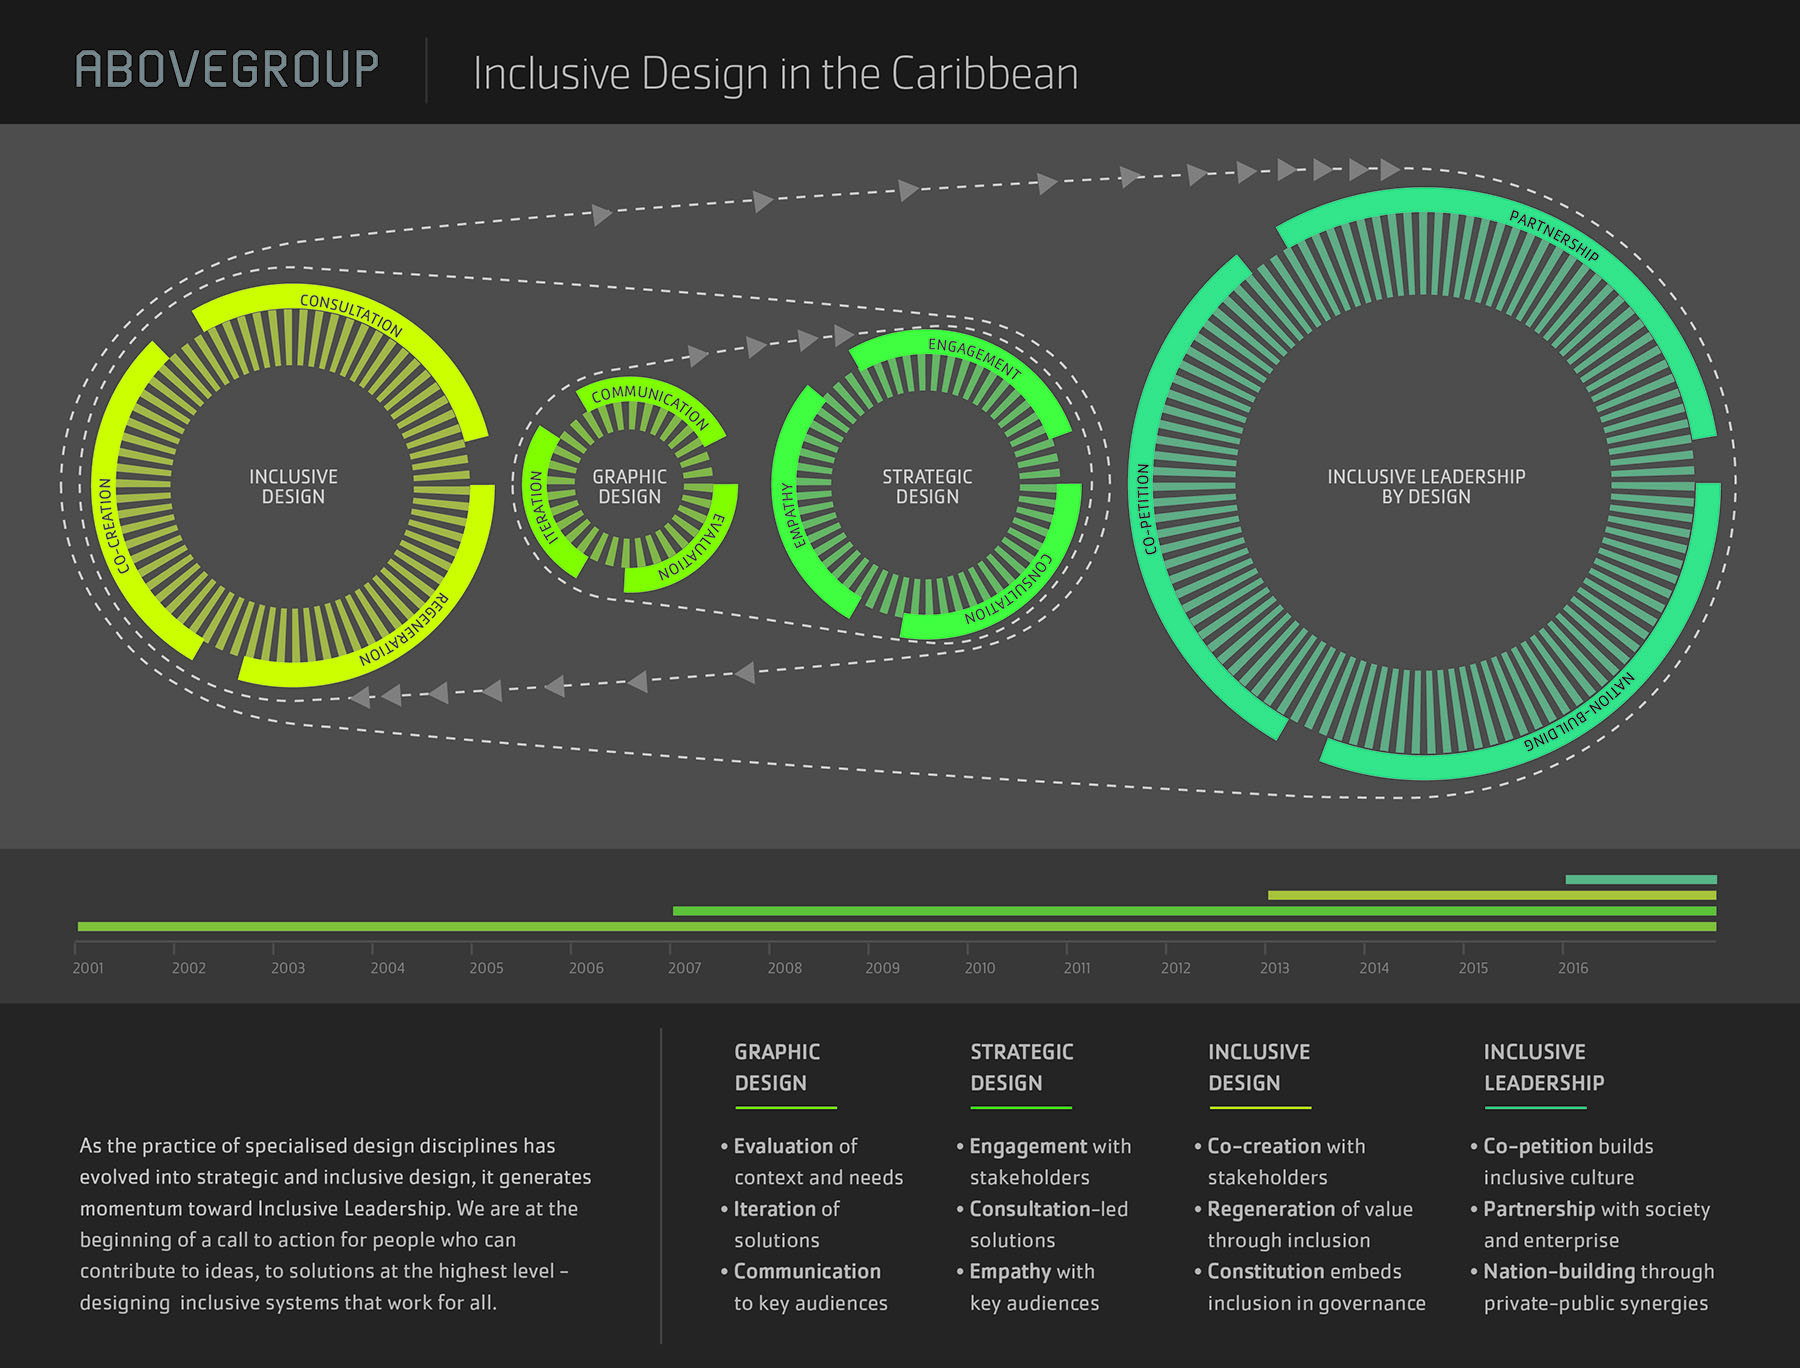 Infographic summarizing the evolution of Abovegroup's practice, as well as design disciplines in the Caribbean, toward inclusive leadership by design.